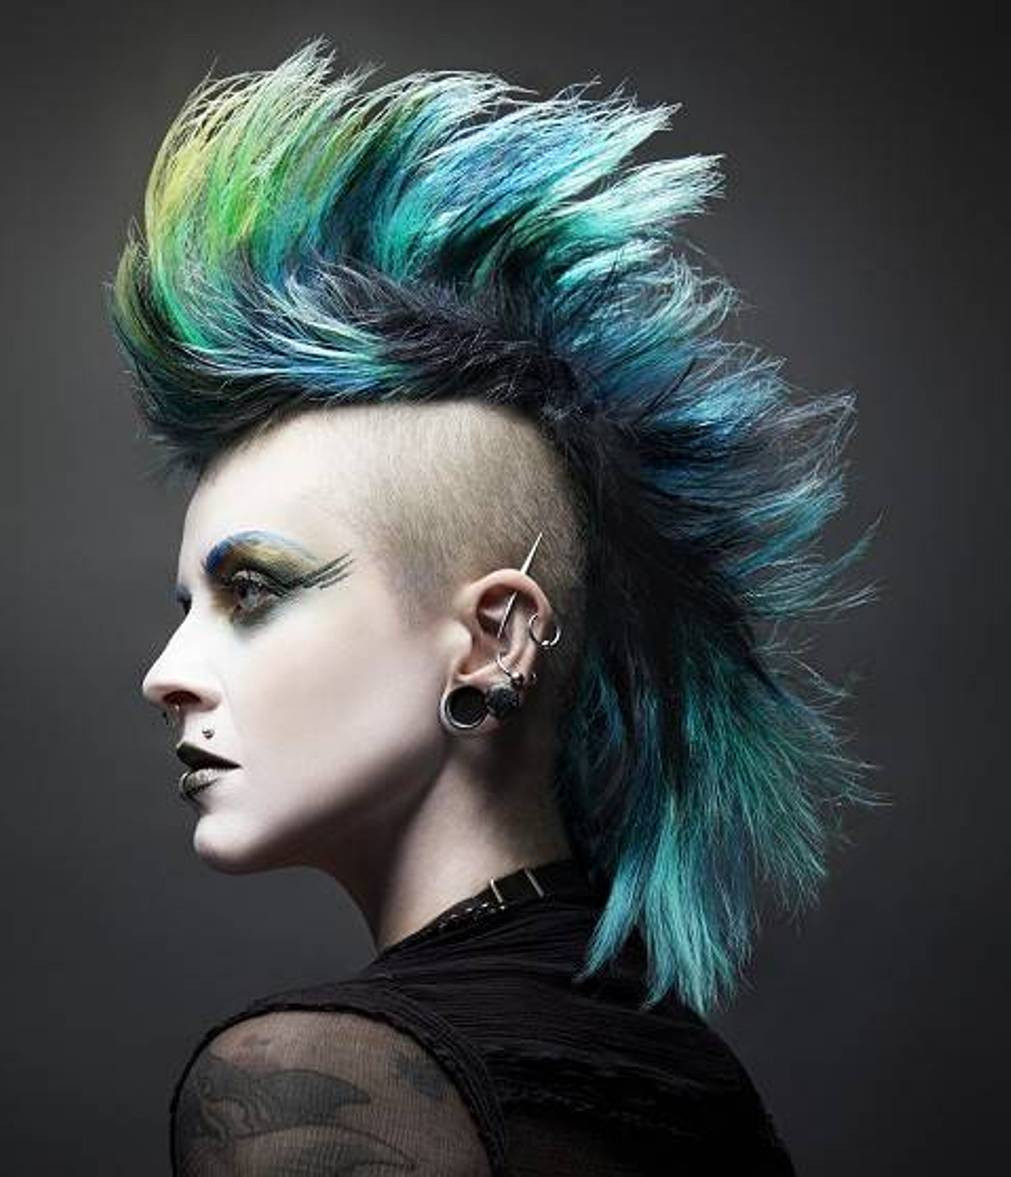 Best ideas about Punk Hairstyles Female . Save or Pin mens haircuts punk haircuts Now.